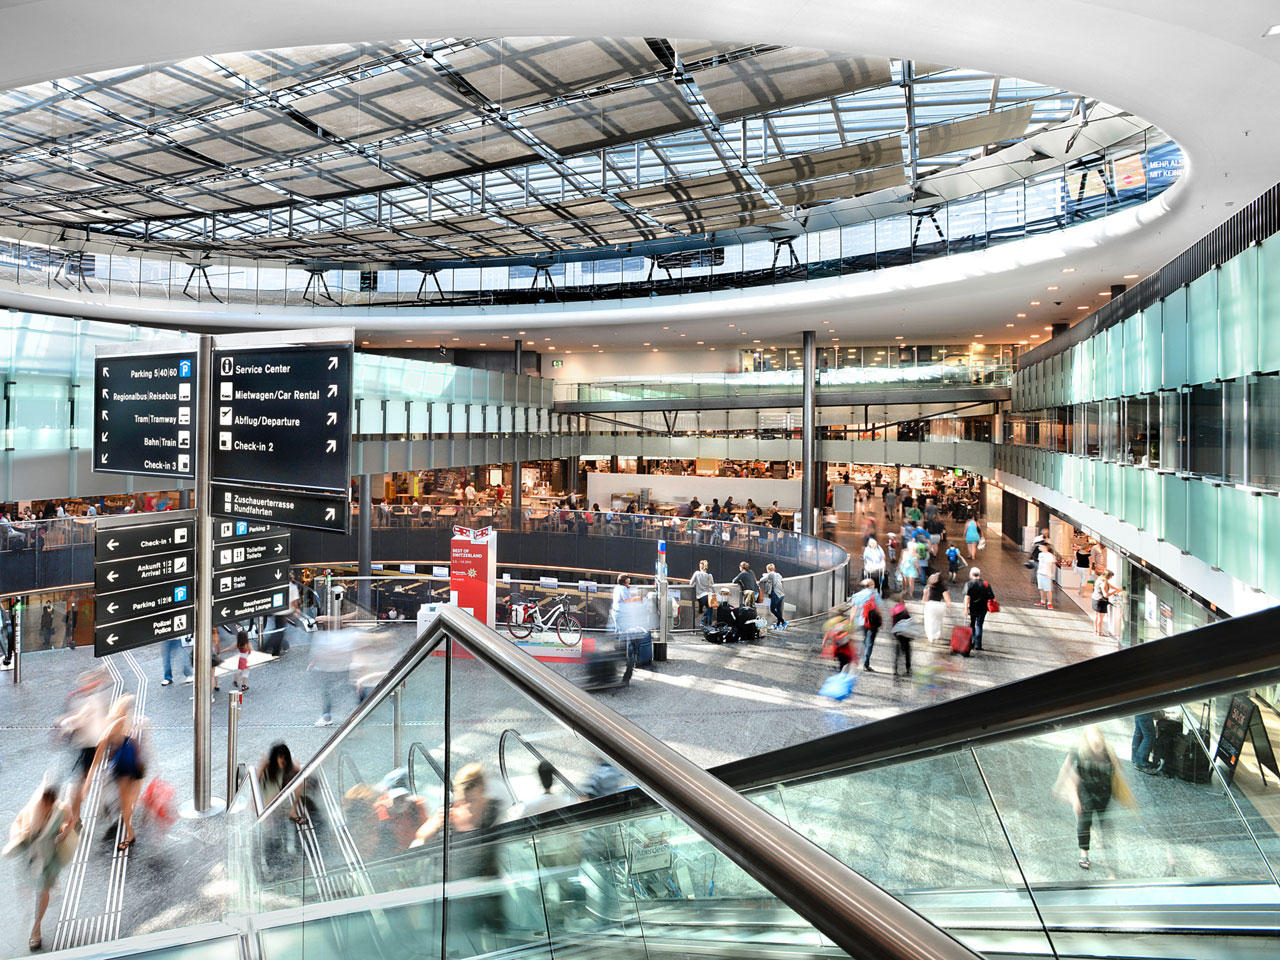 interior of zurich airport - VISIT ALL OVER THE WORLD